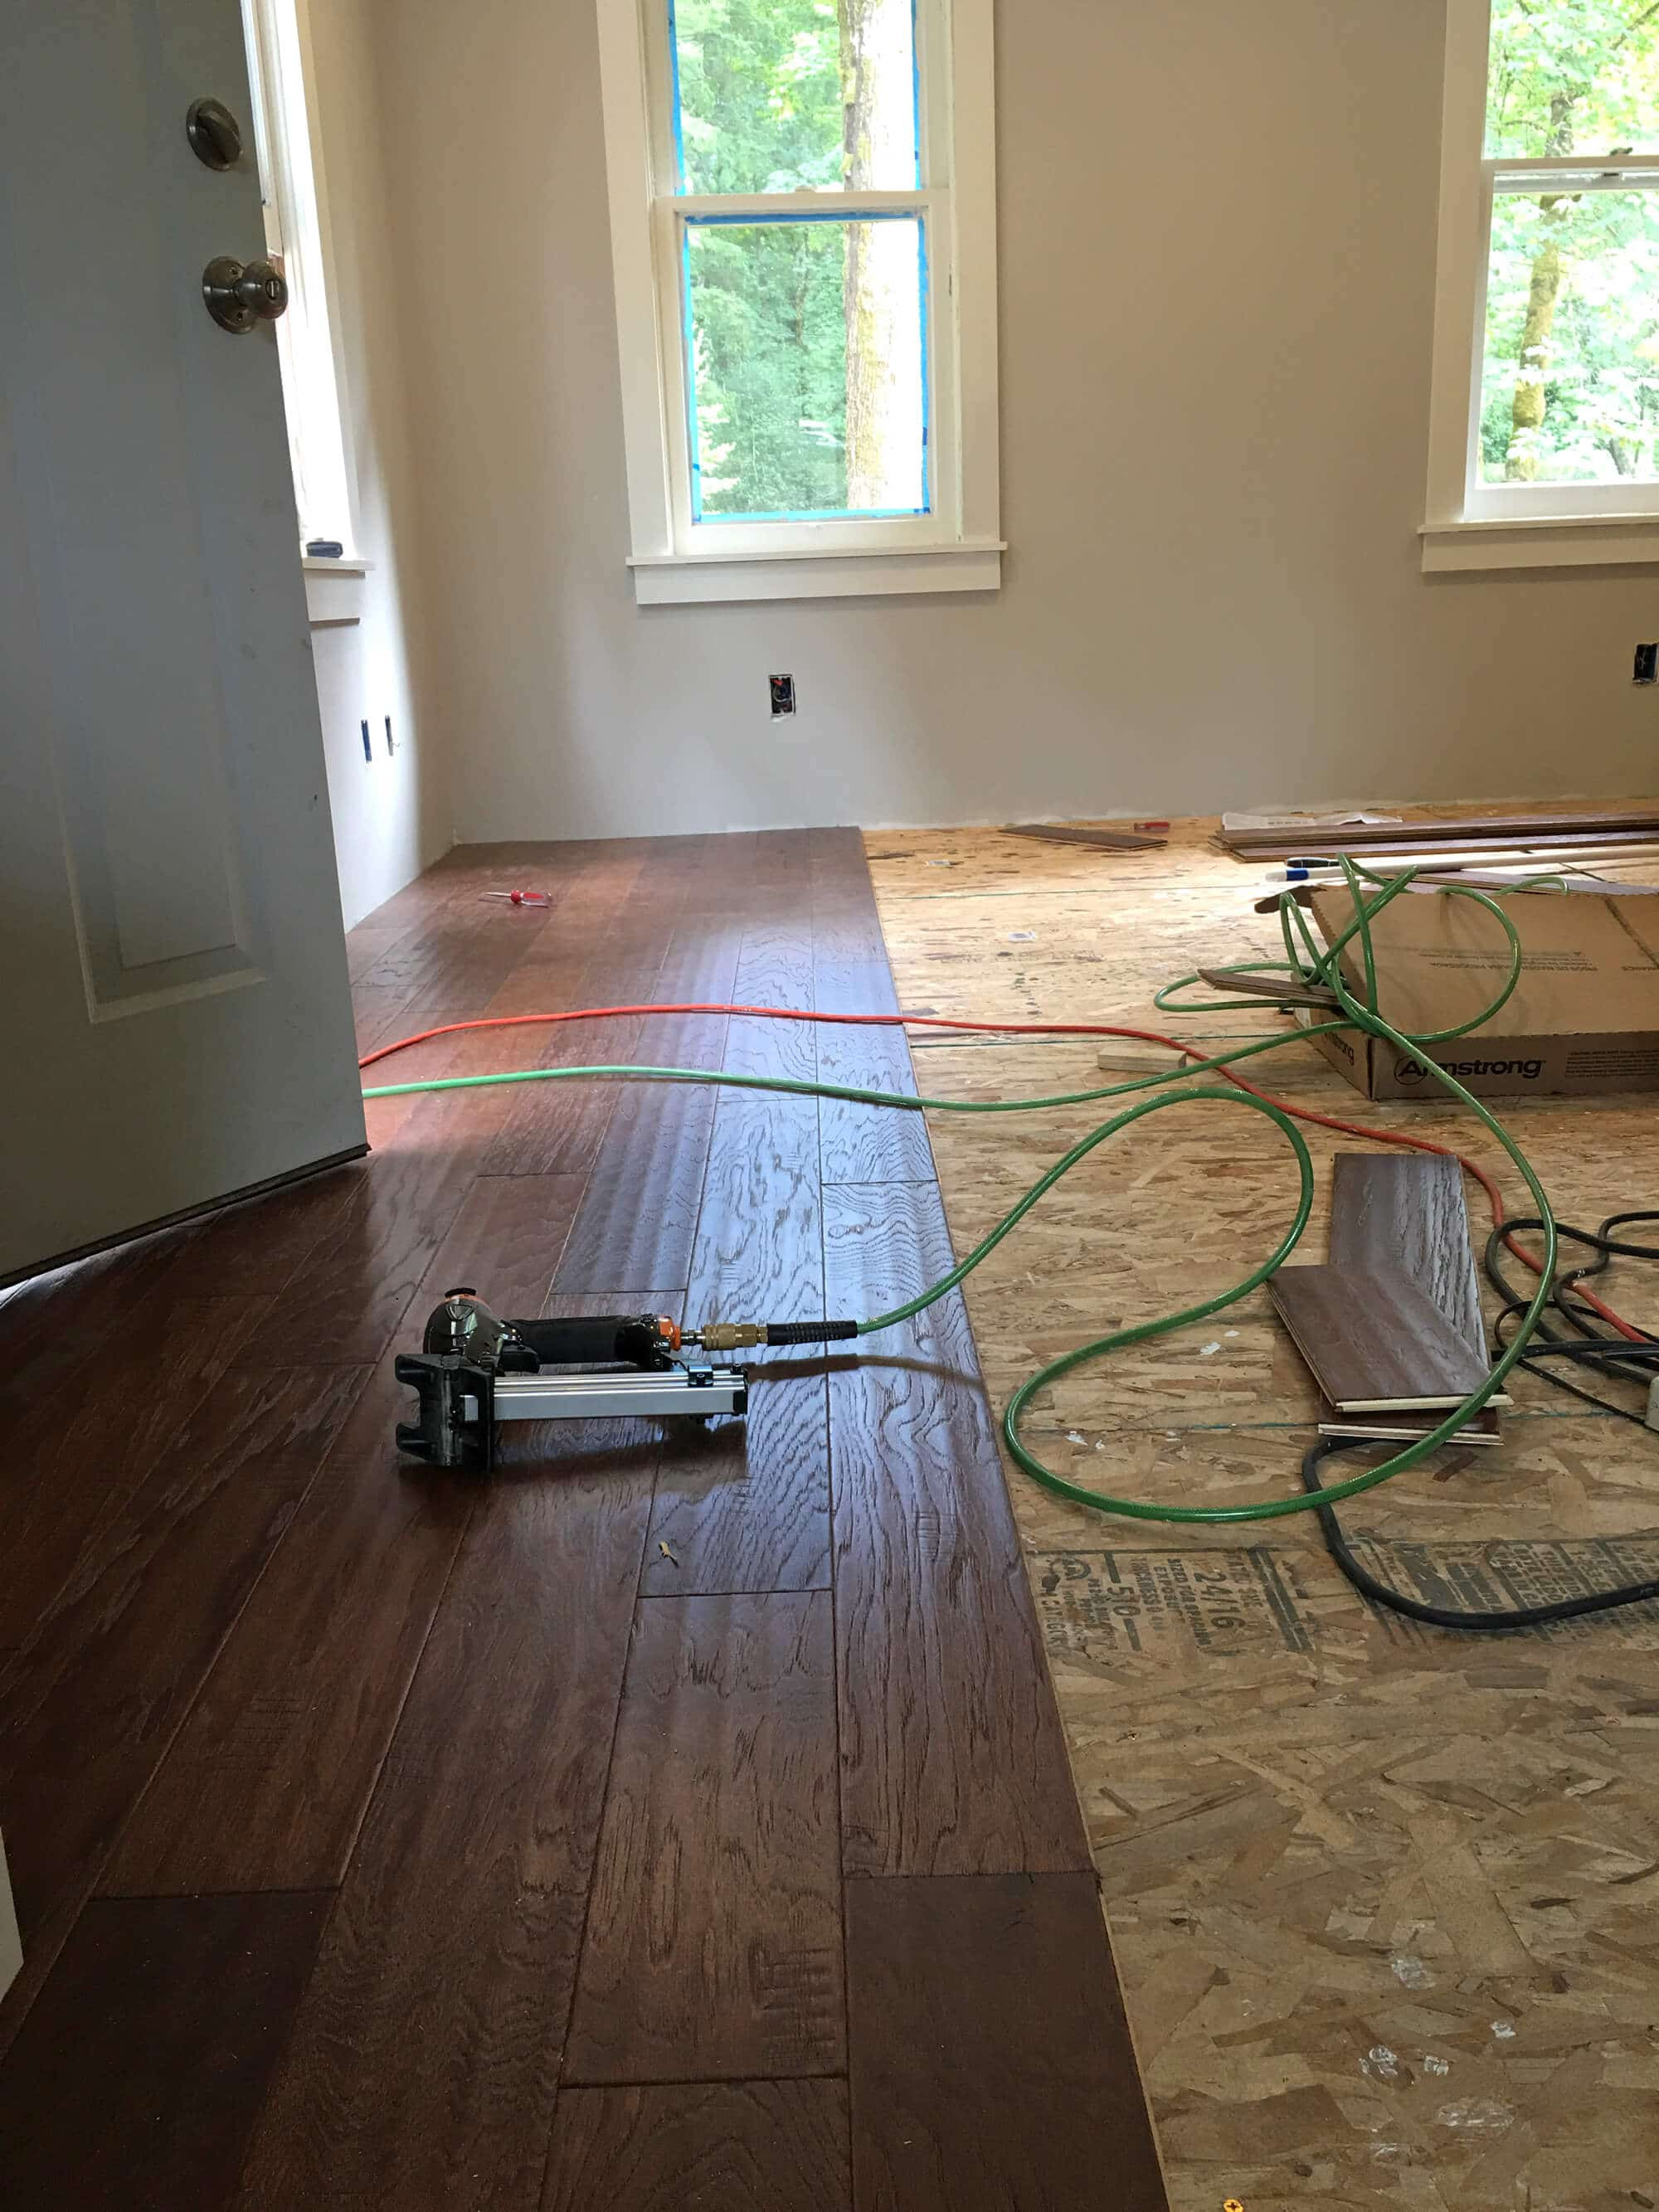 buy hardwood floor nailer of the micro dwelling project part 5 flooring the daring gourmet in as for the pattern of the flooring the floor panels come in a mixture of different lengths thats deliberate to help you avoid any obvious patterns